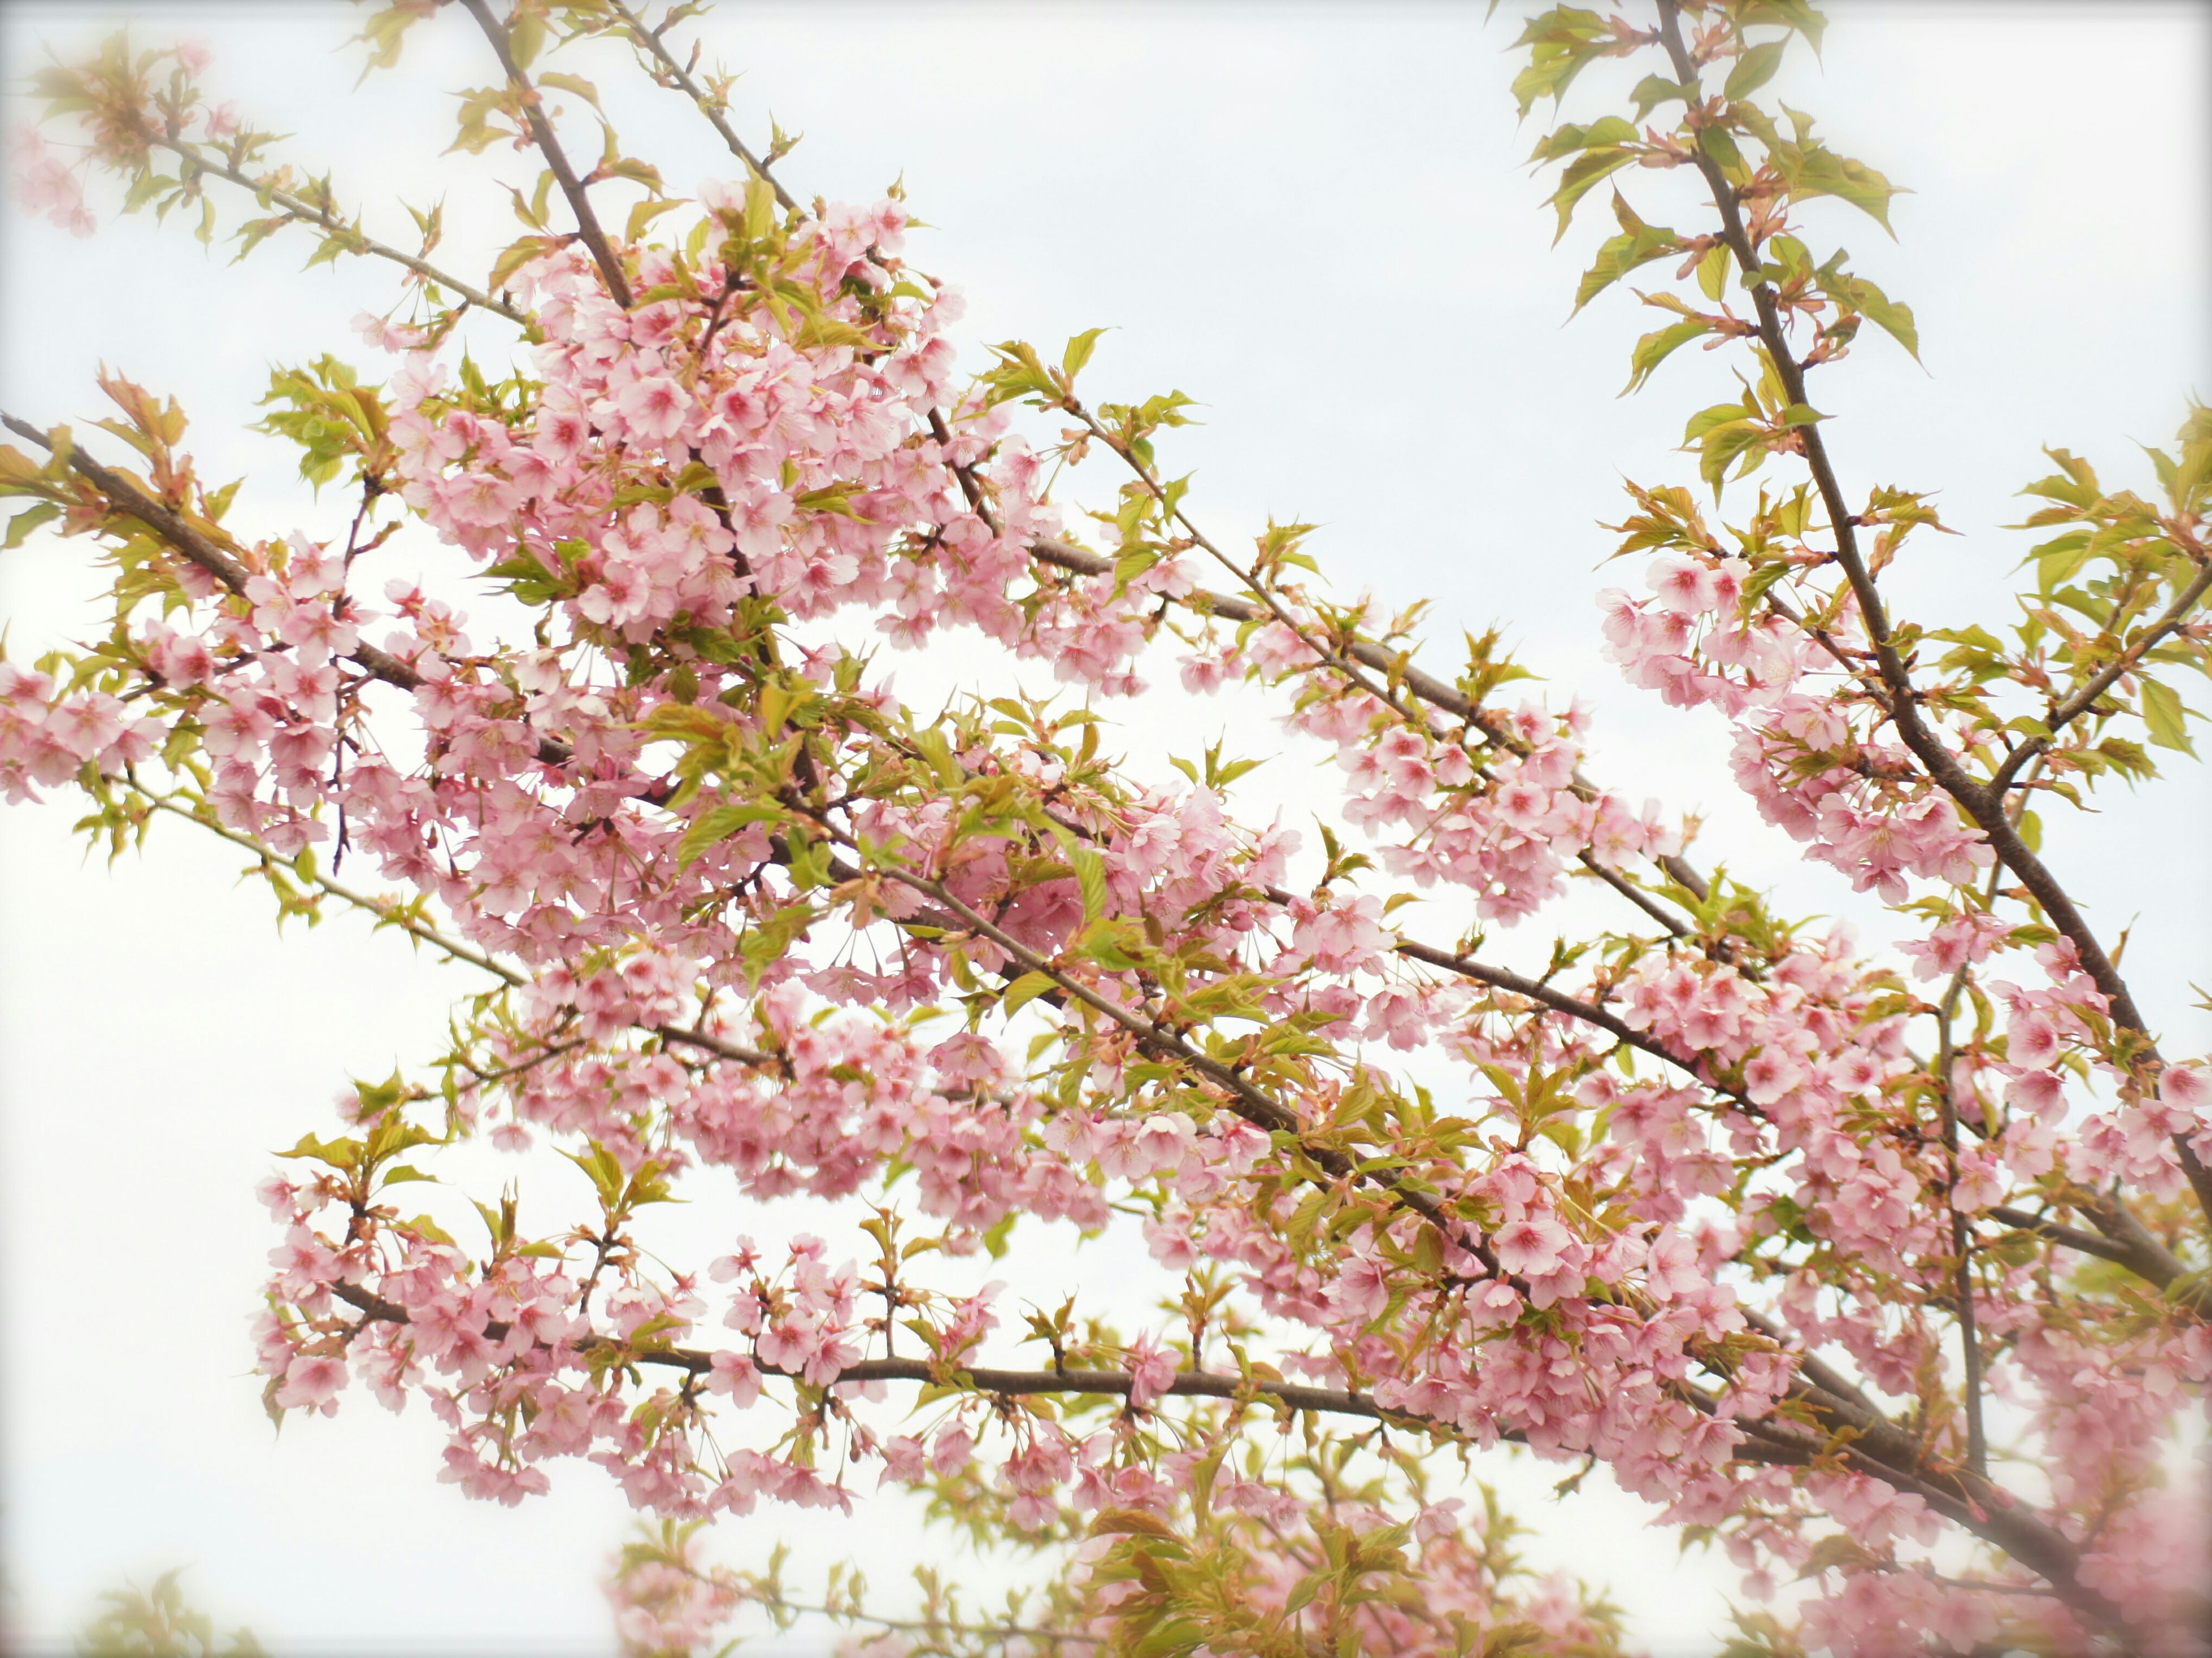 flower, tree, freshness, low angle view, growth, branch, pink color, fragility, beauty in nature, blossom, nature, cherry blossom, in bloom, blooming, springtime, cherry tree, sky, clear sky, petal, pink